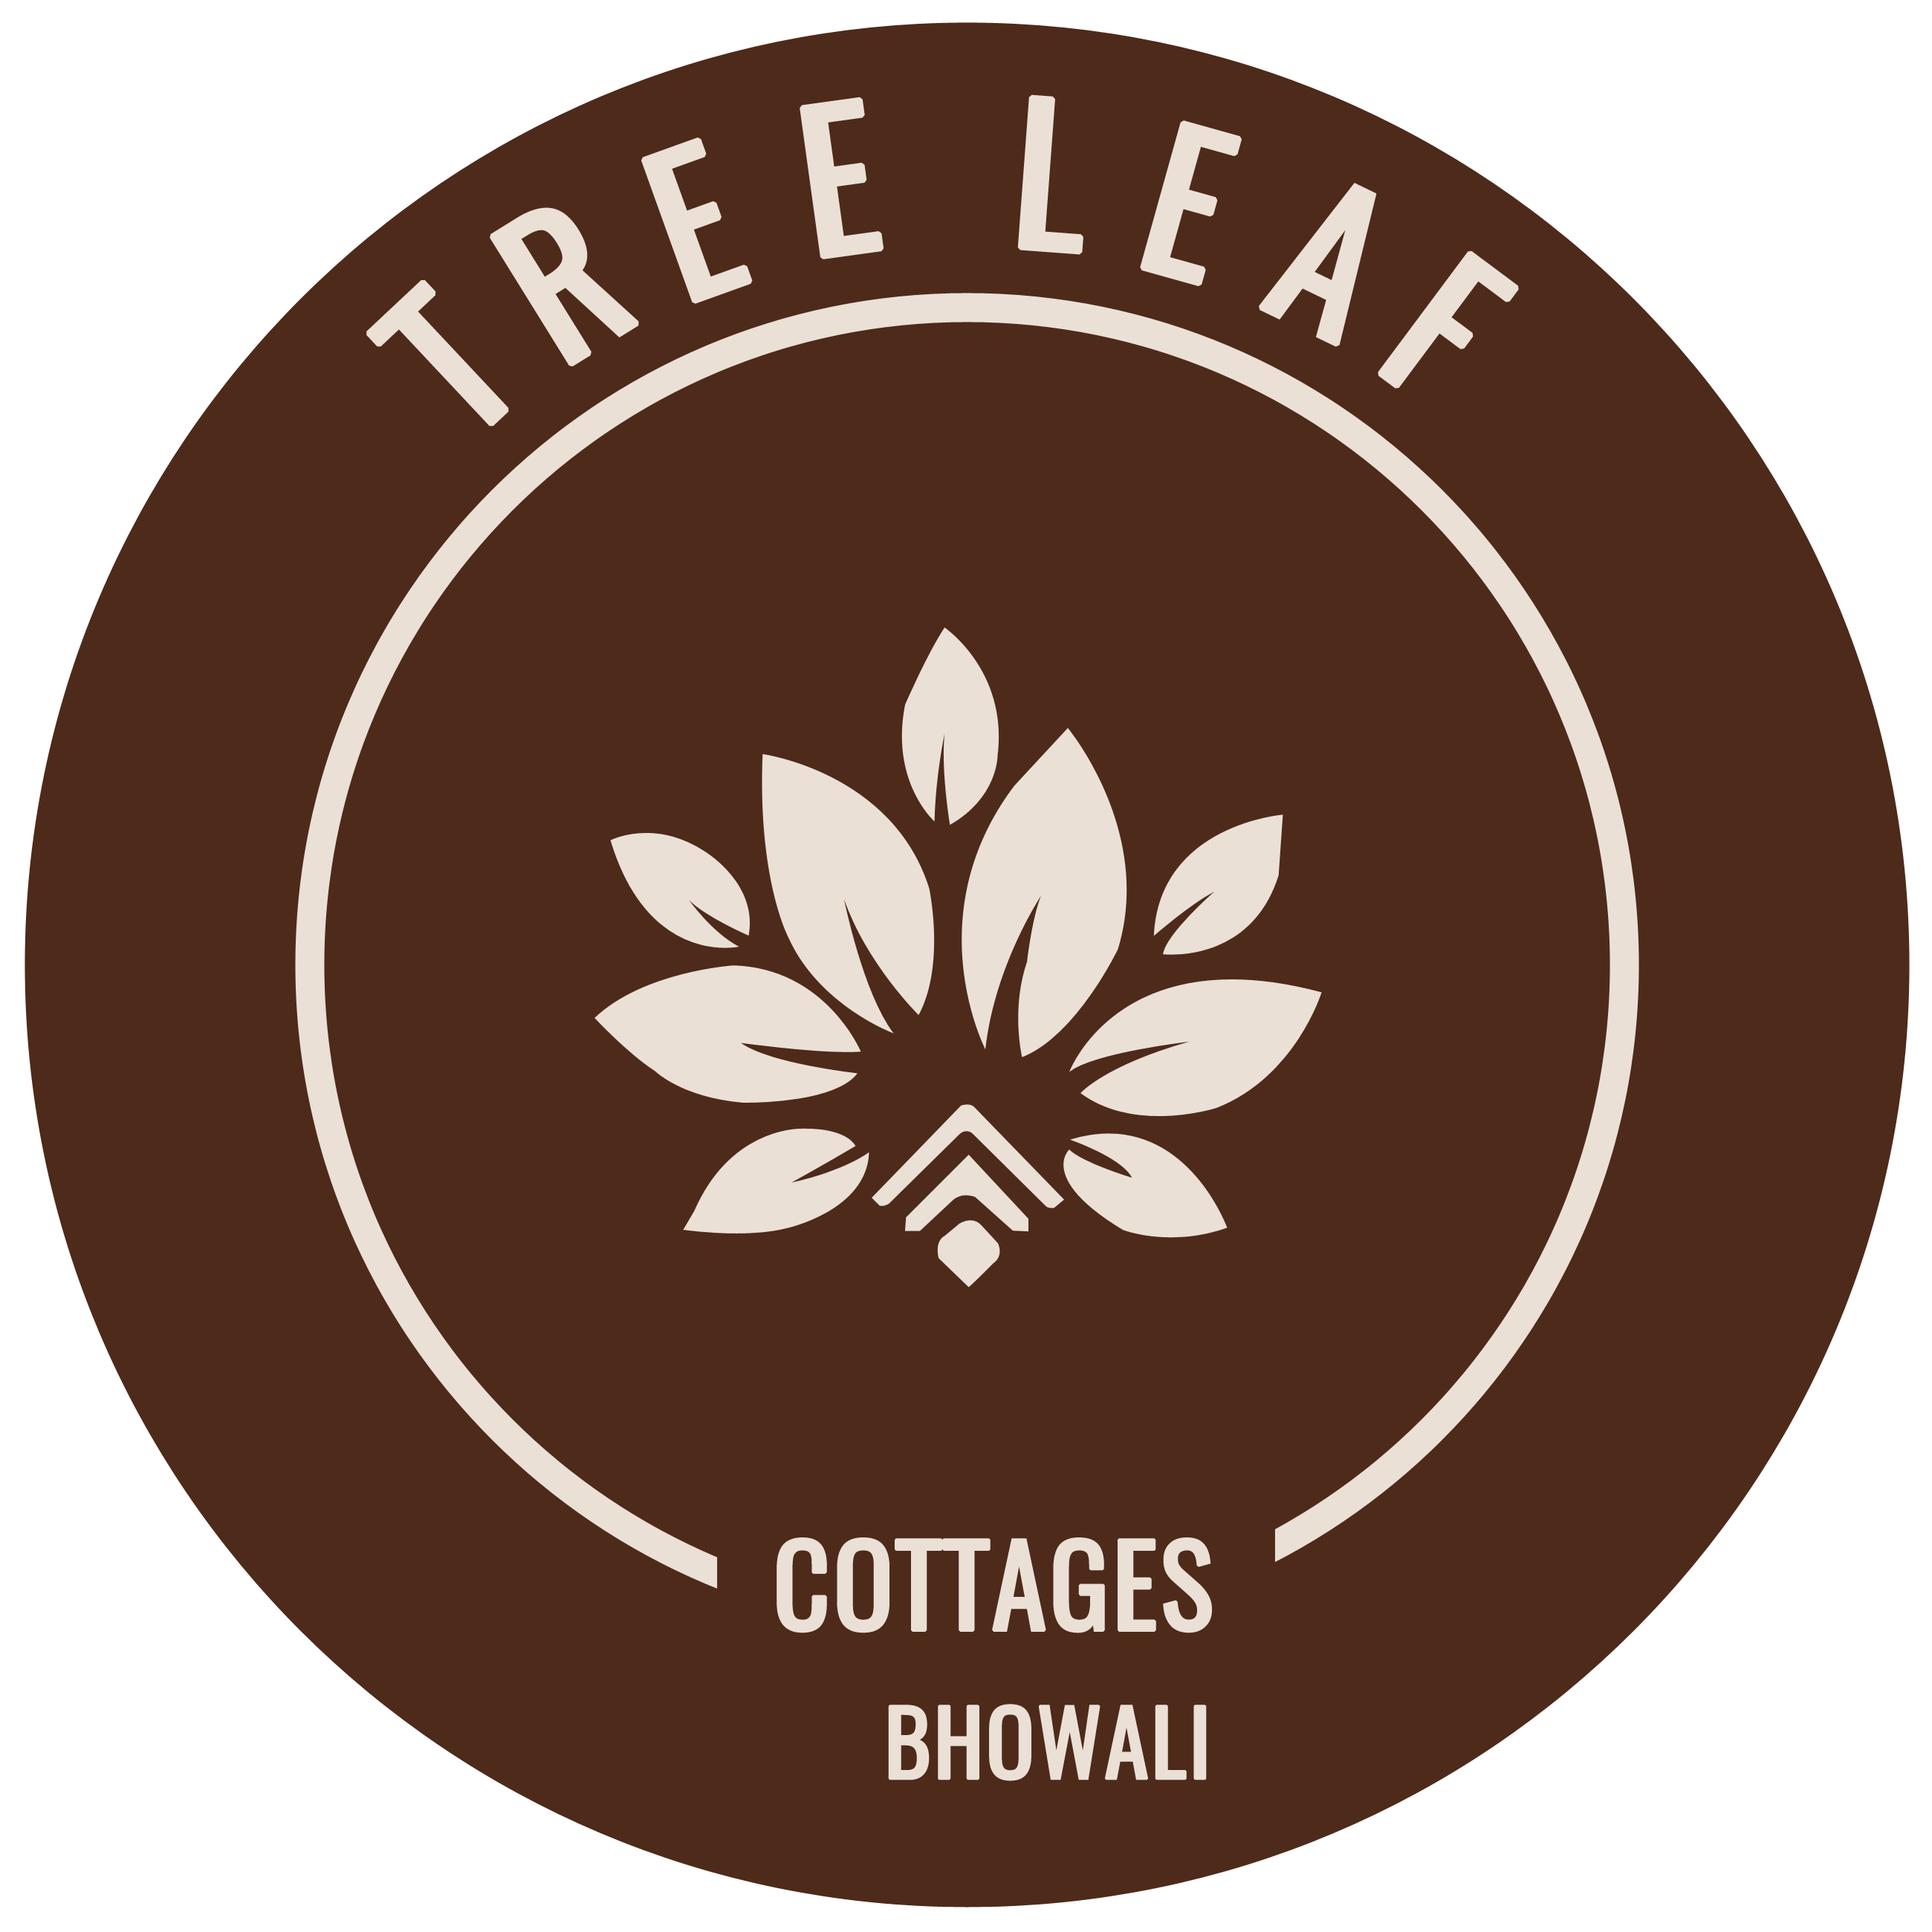 Tree Leaf  Hotels (treeleafhotels)